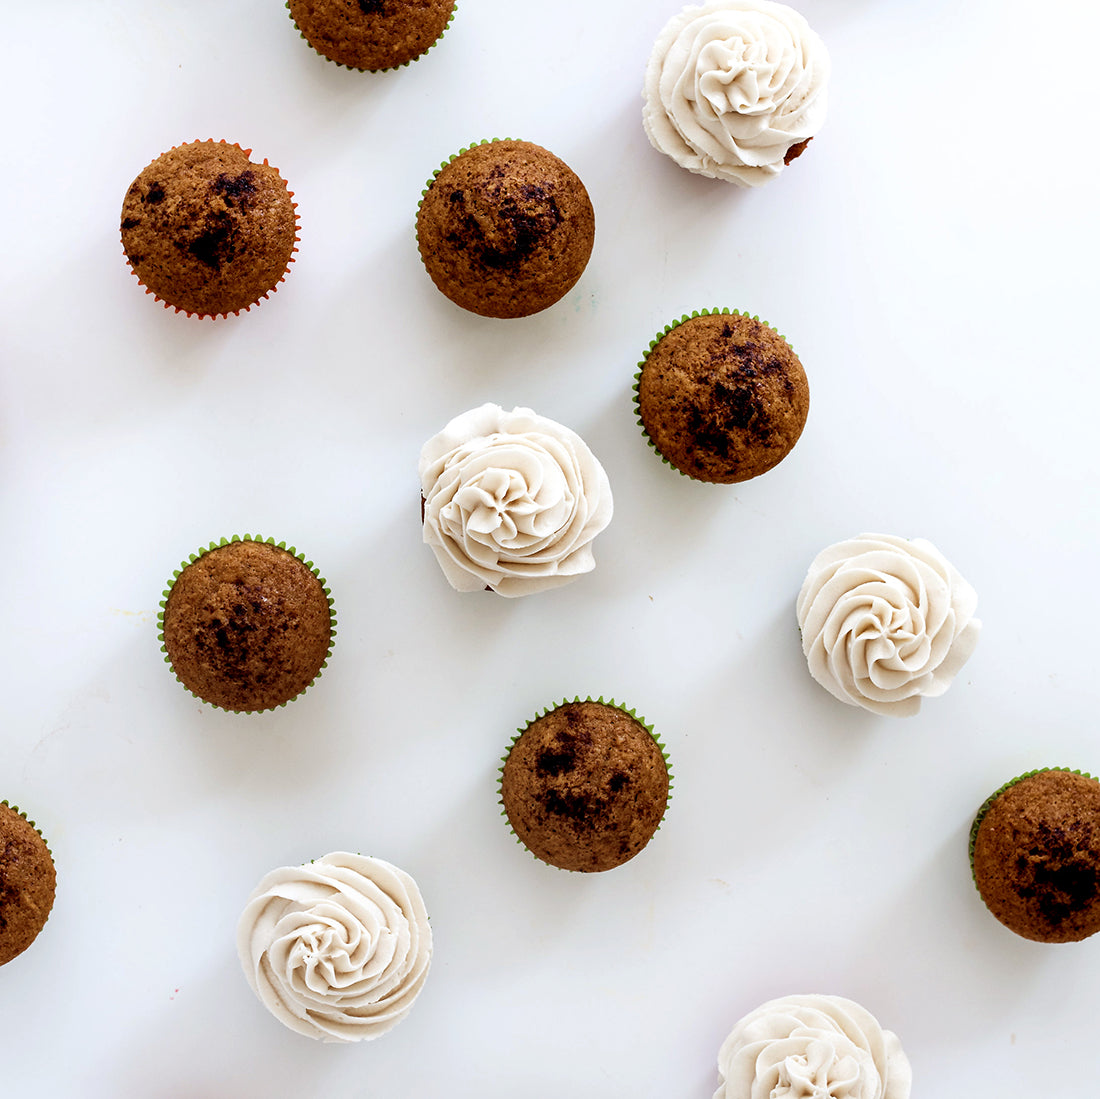 Image from above of some frosted and some unfrosted Miss Jones Baking Co Pumpkin Spice Latte (PSL) Cupcakes